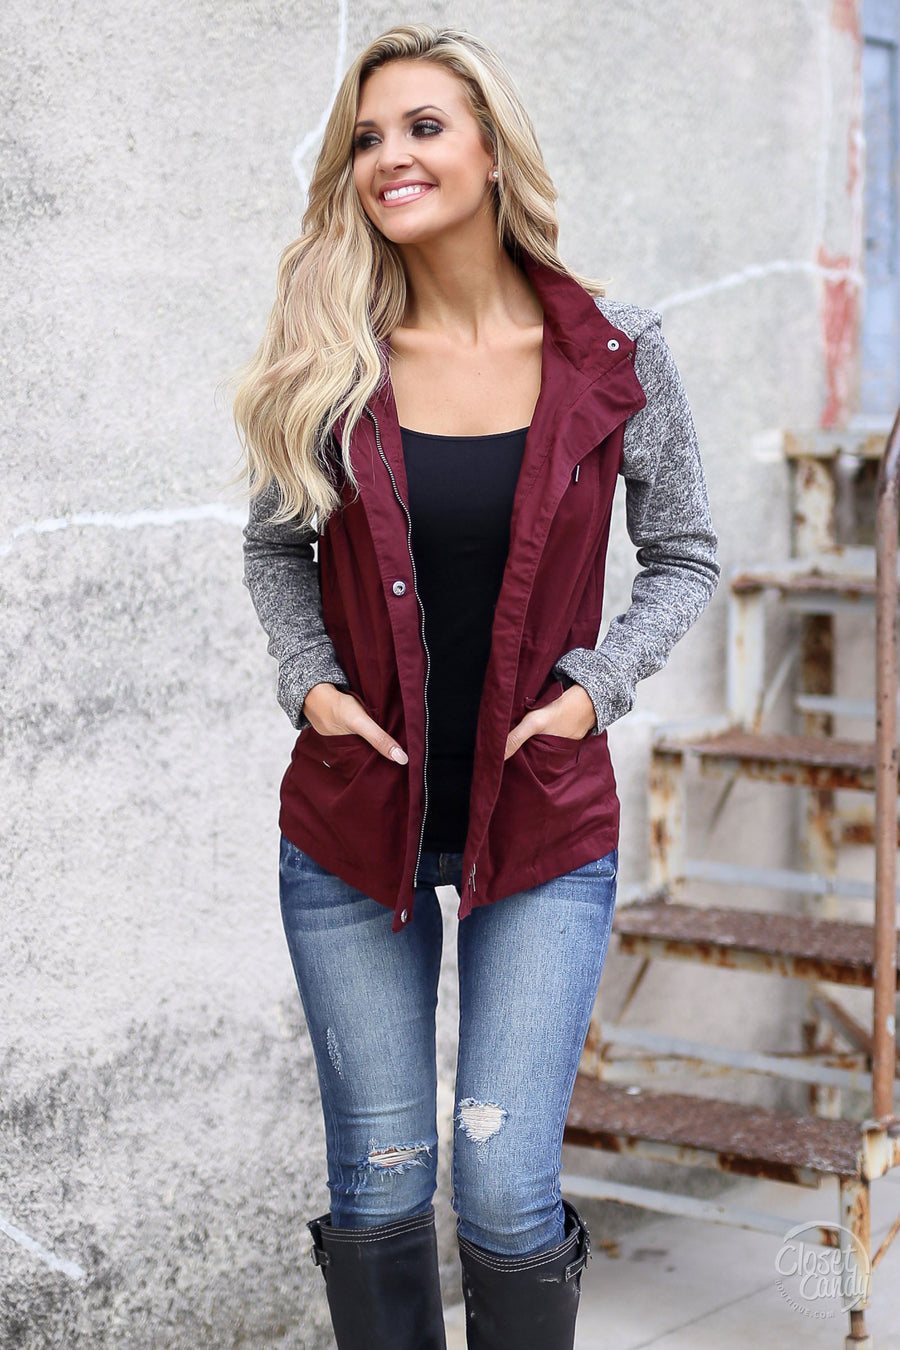 When I'm With You Hooded Jacket - cute wine contrast jacket, fall outfit, Closet Candy Boutique 1